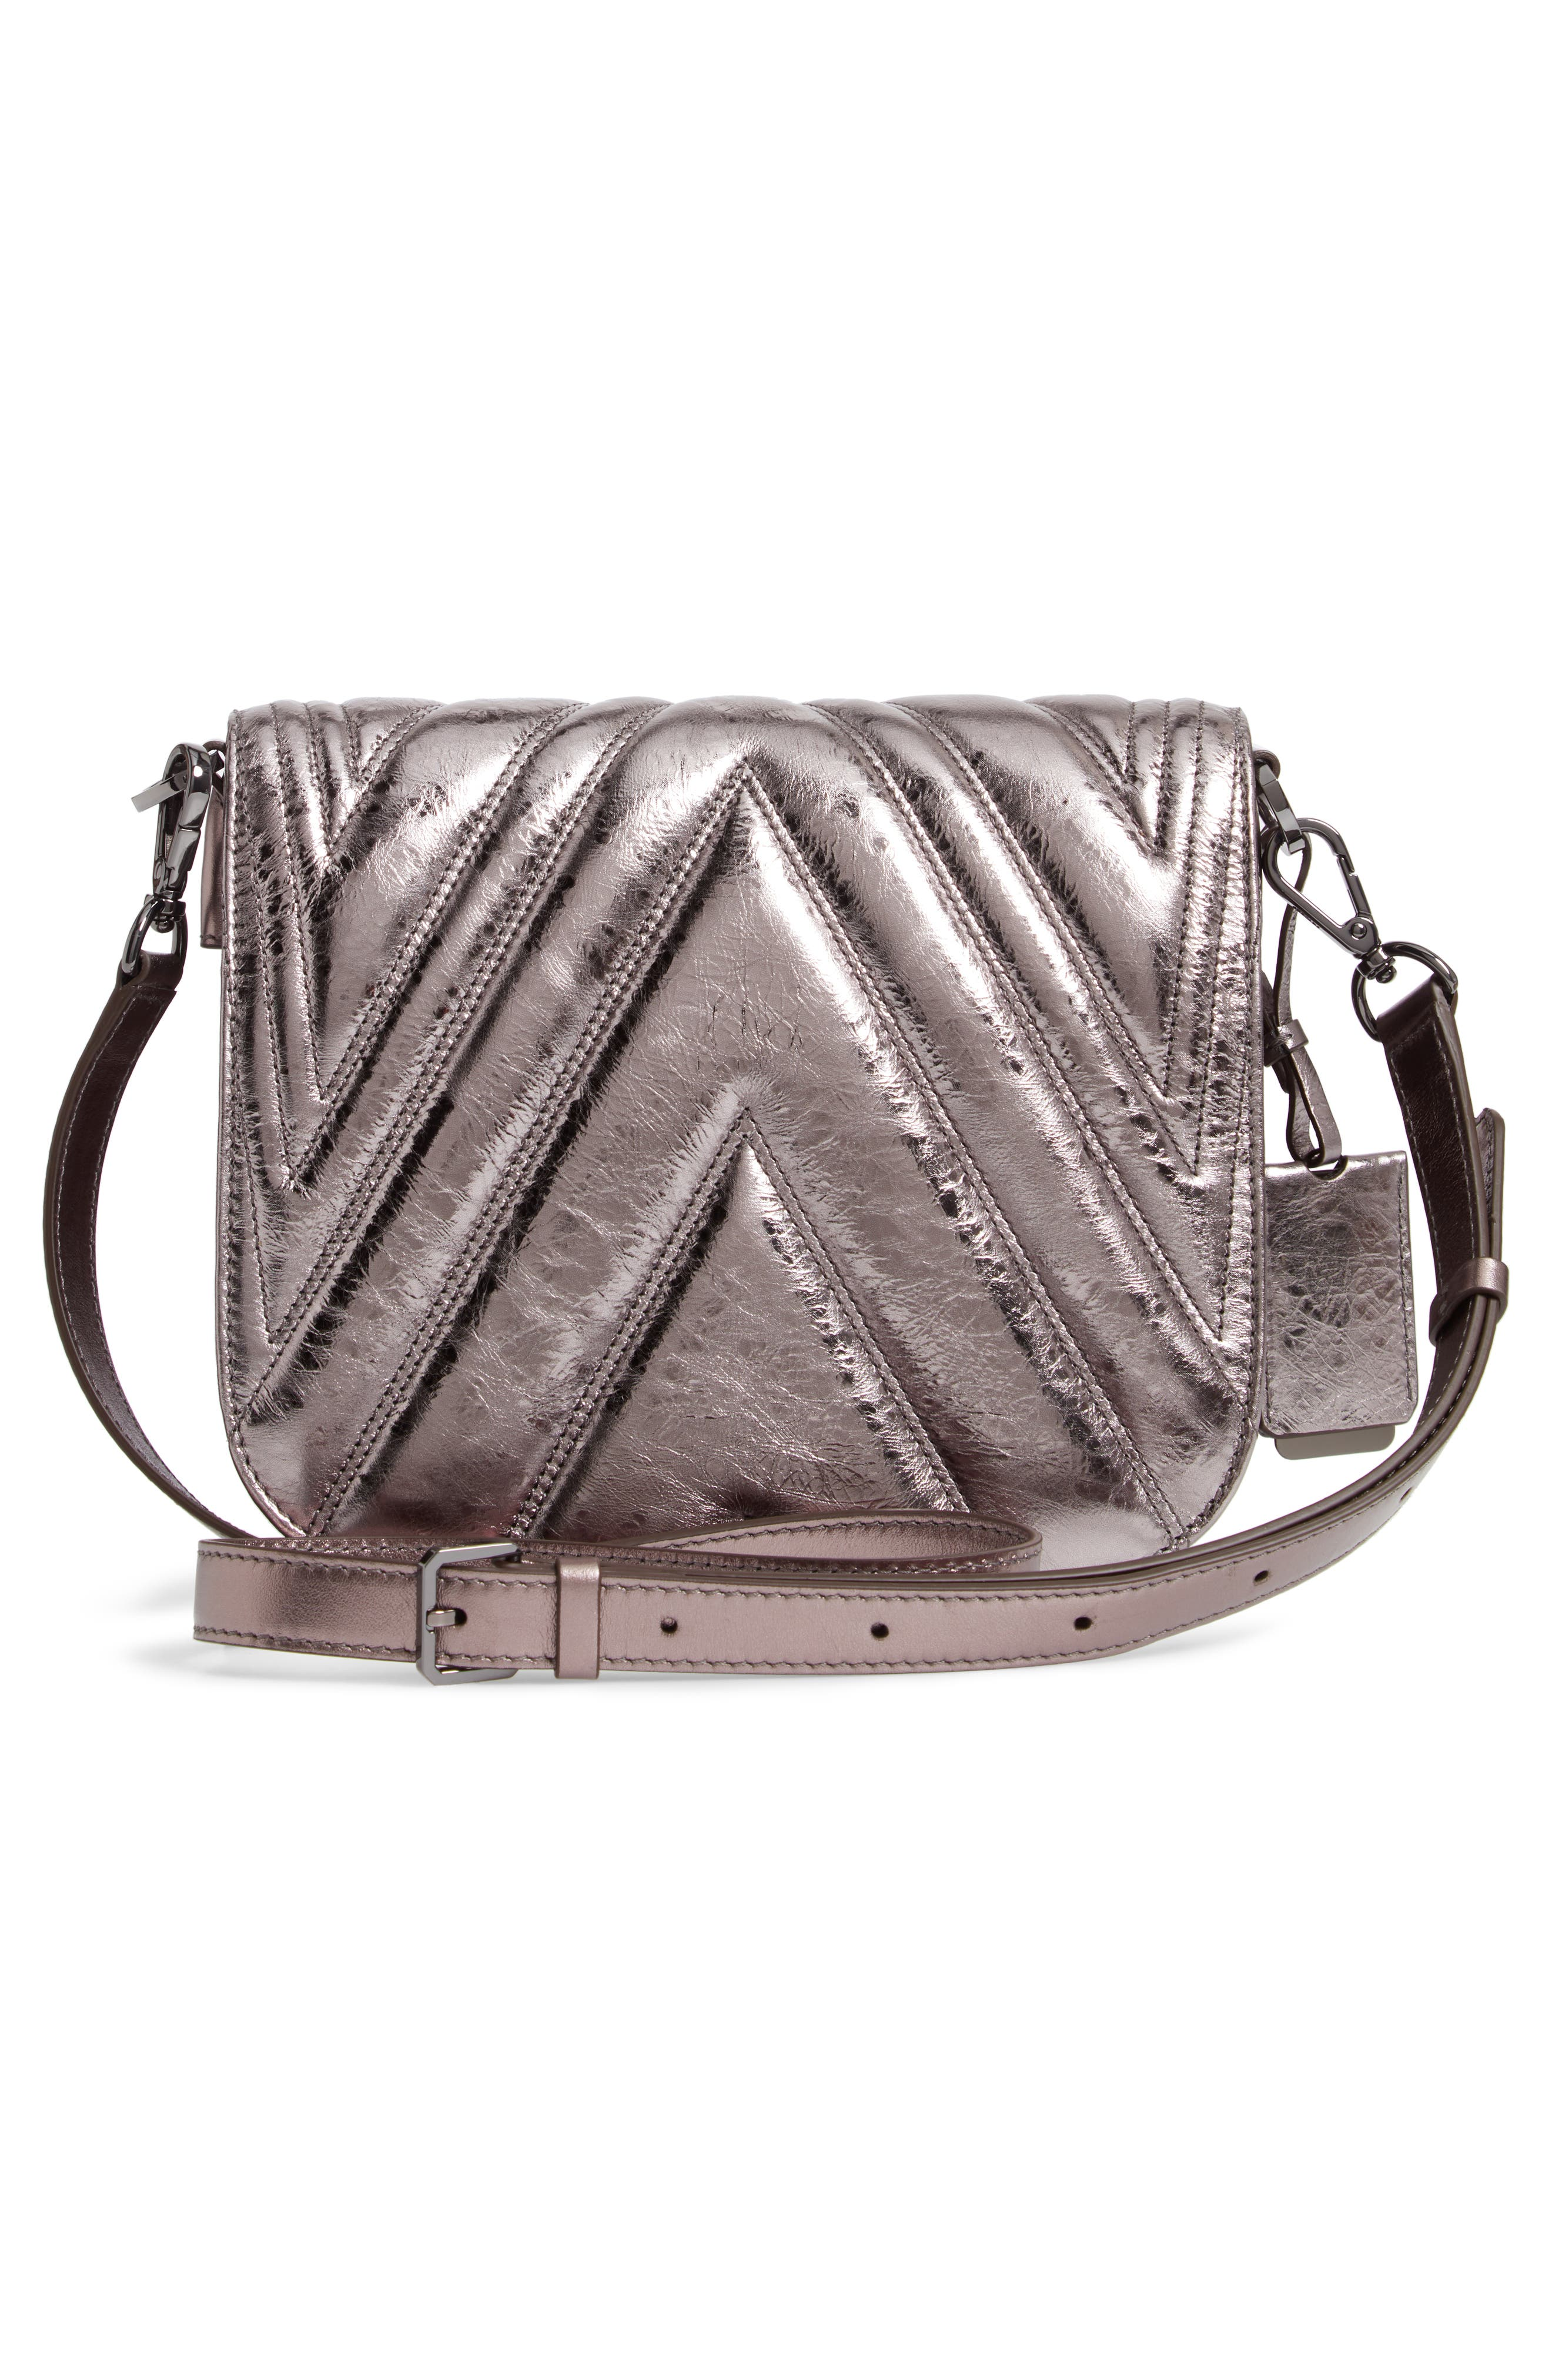 Patricia Quilted Metallic Leather Saddle Bag,                             Alternate thumbnail 3, color,                             BERLIN SILVER